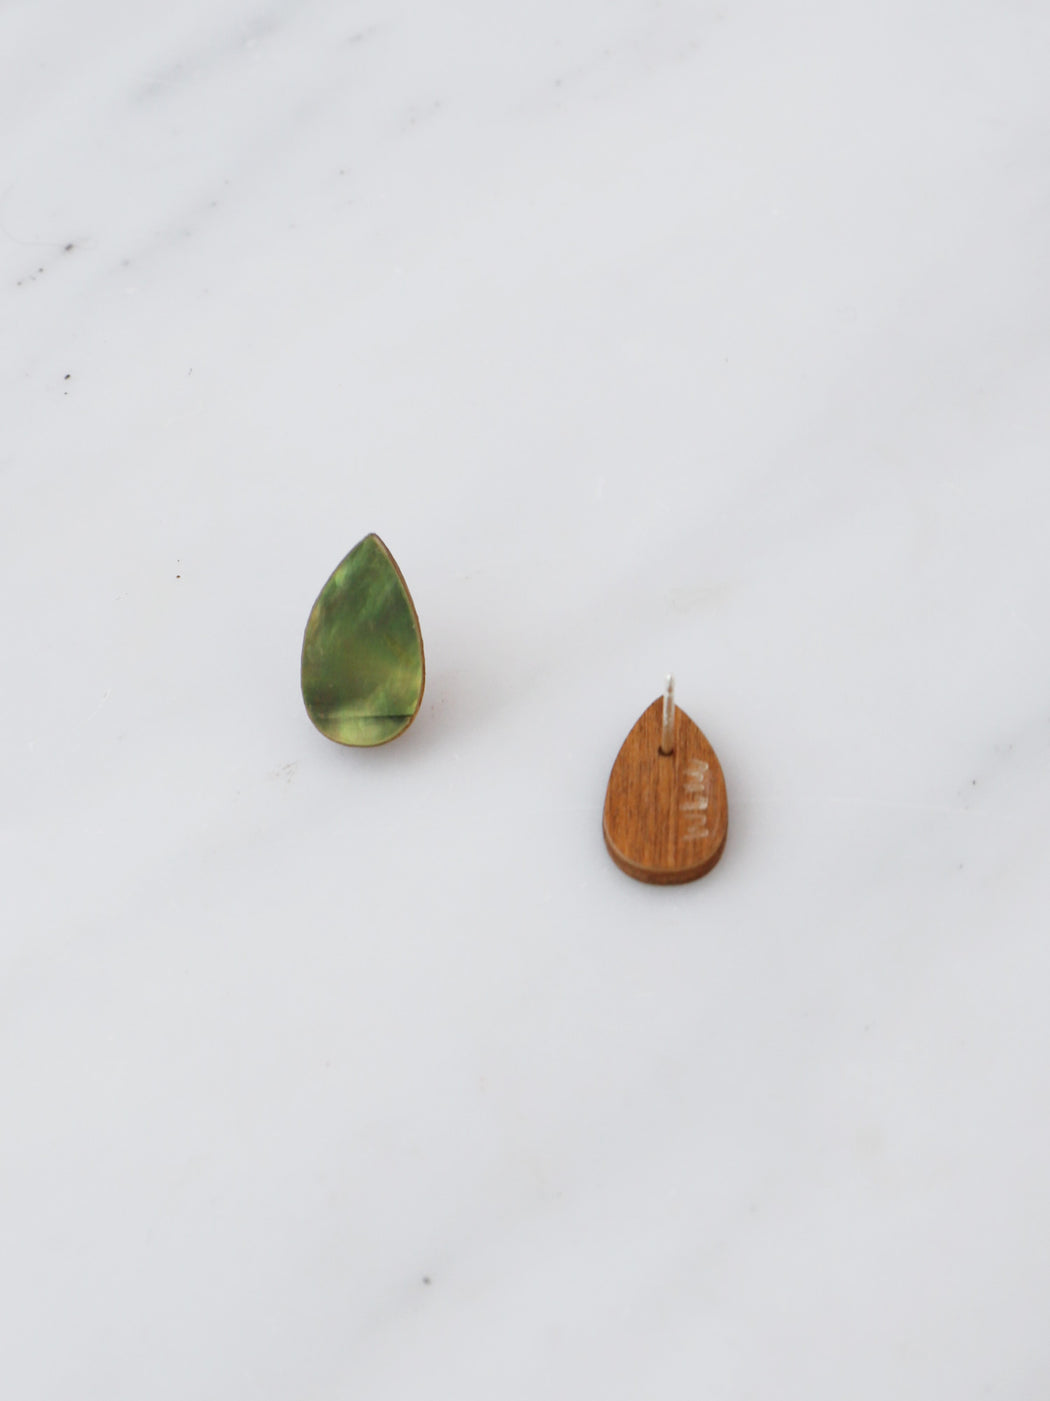 Raindrop Studs in Mother of Pearl. Statement jewellery, handmade in the U.K. by Wolf & Moon.r